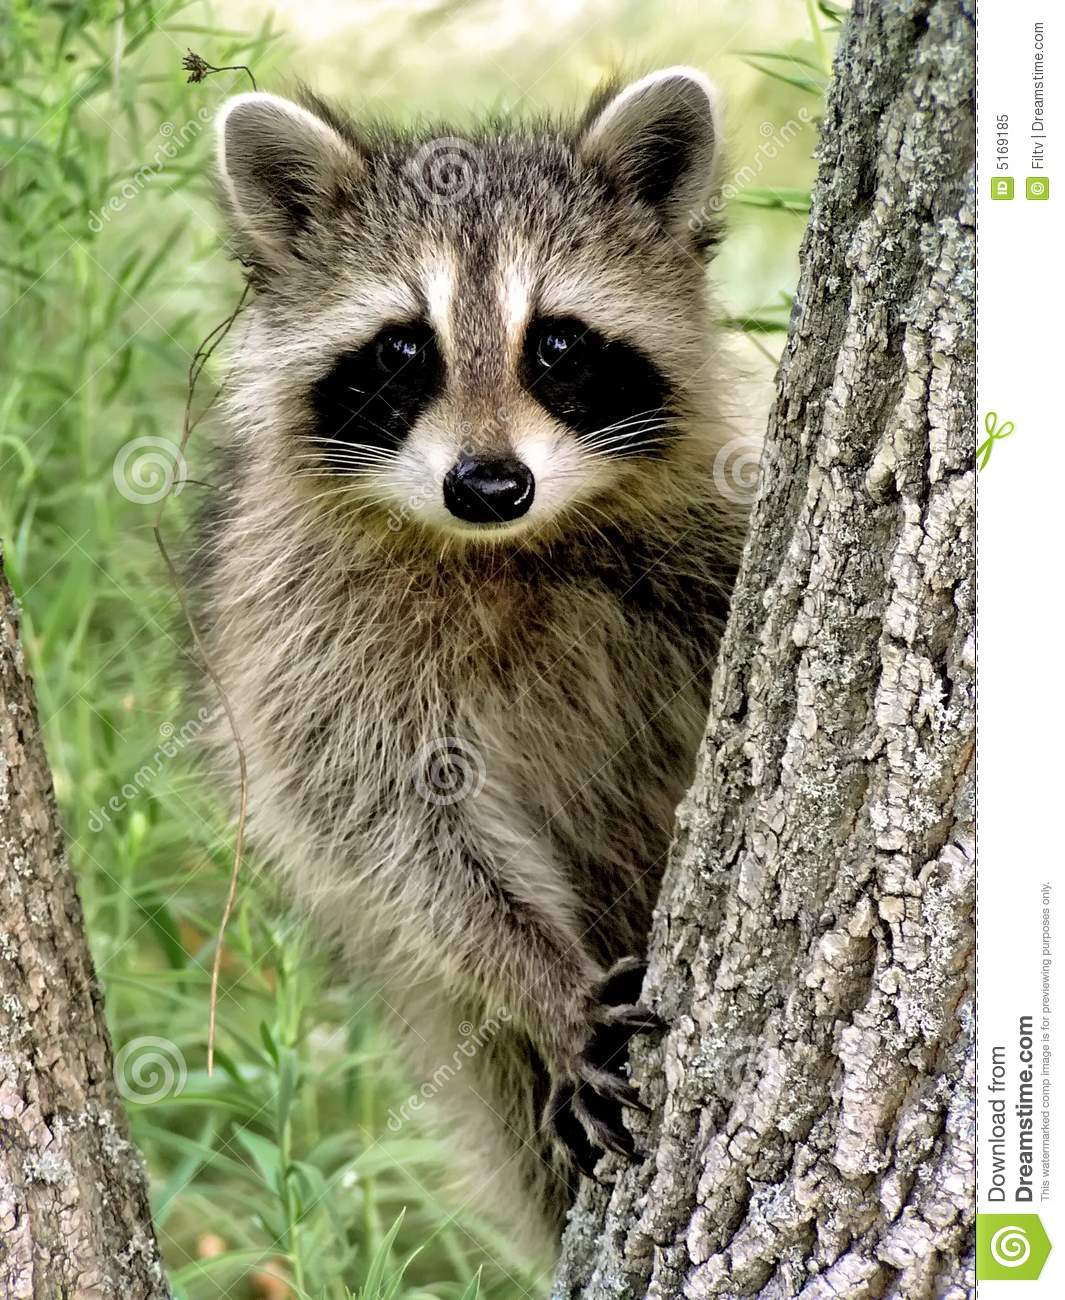 Cute Paw Print Wallpaper Baby Racoon Stock Image Image Of Looking Nature